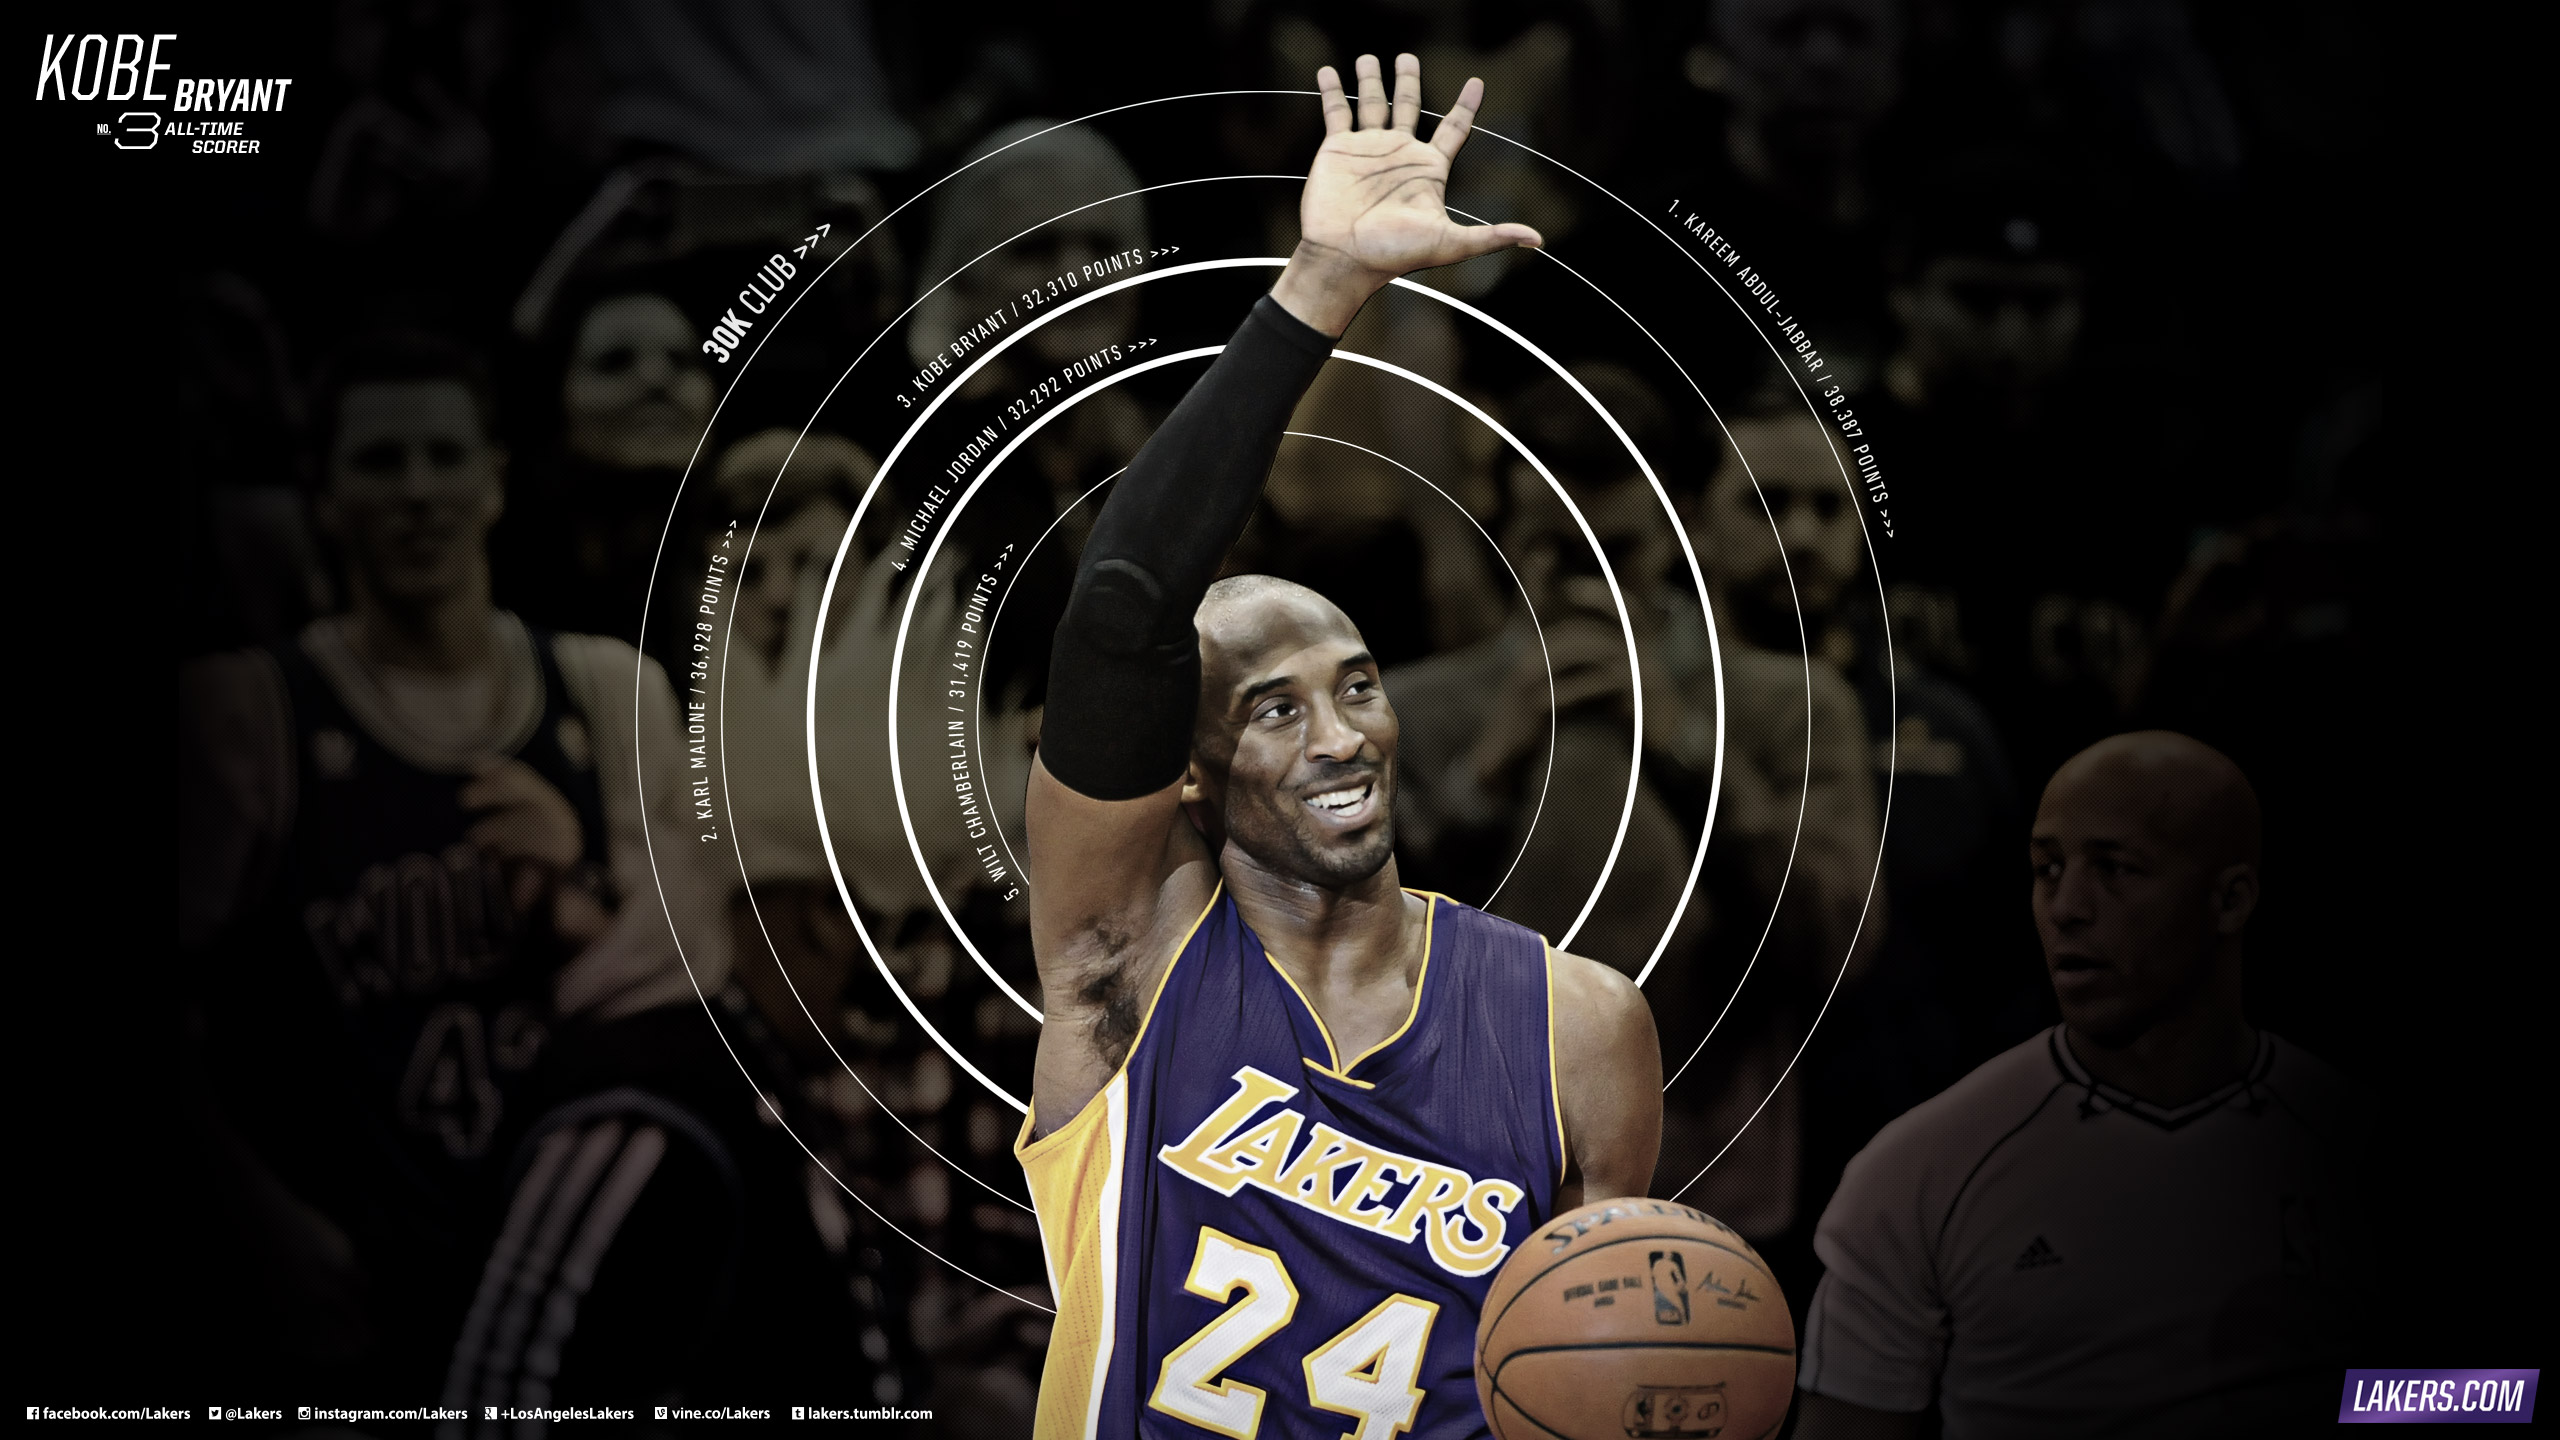 kobe bryant wallpaper 2016 - photo #8